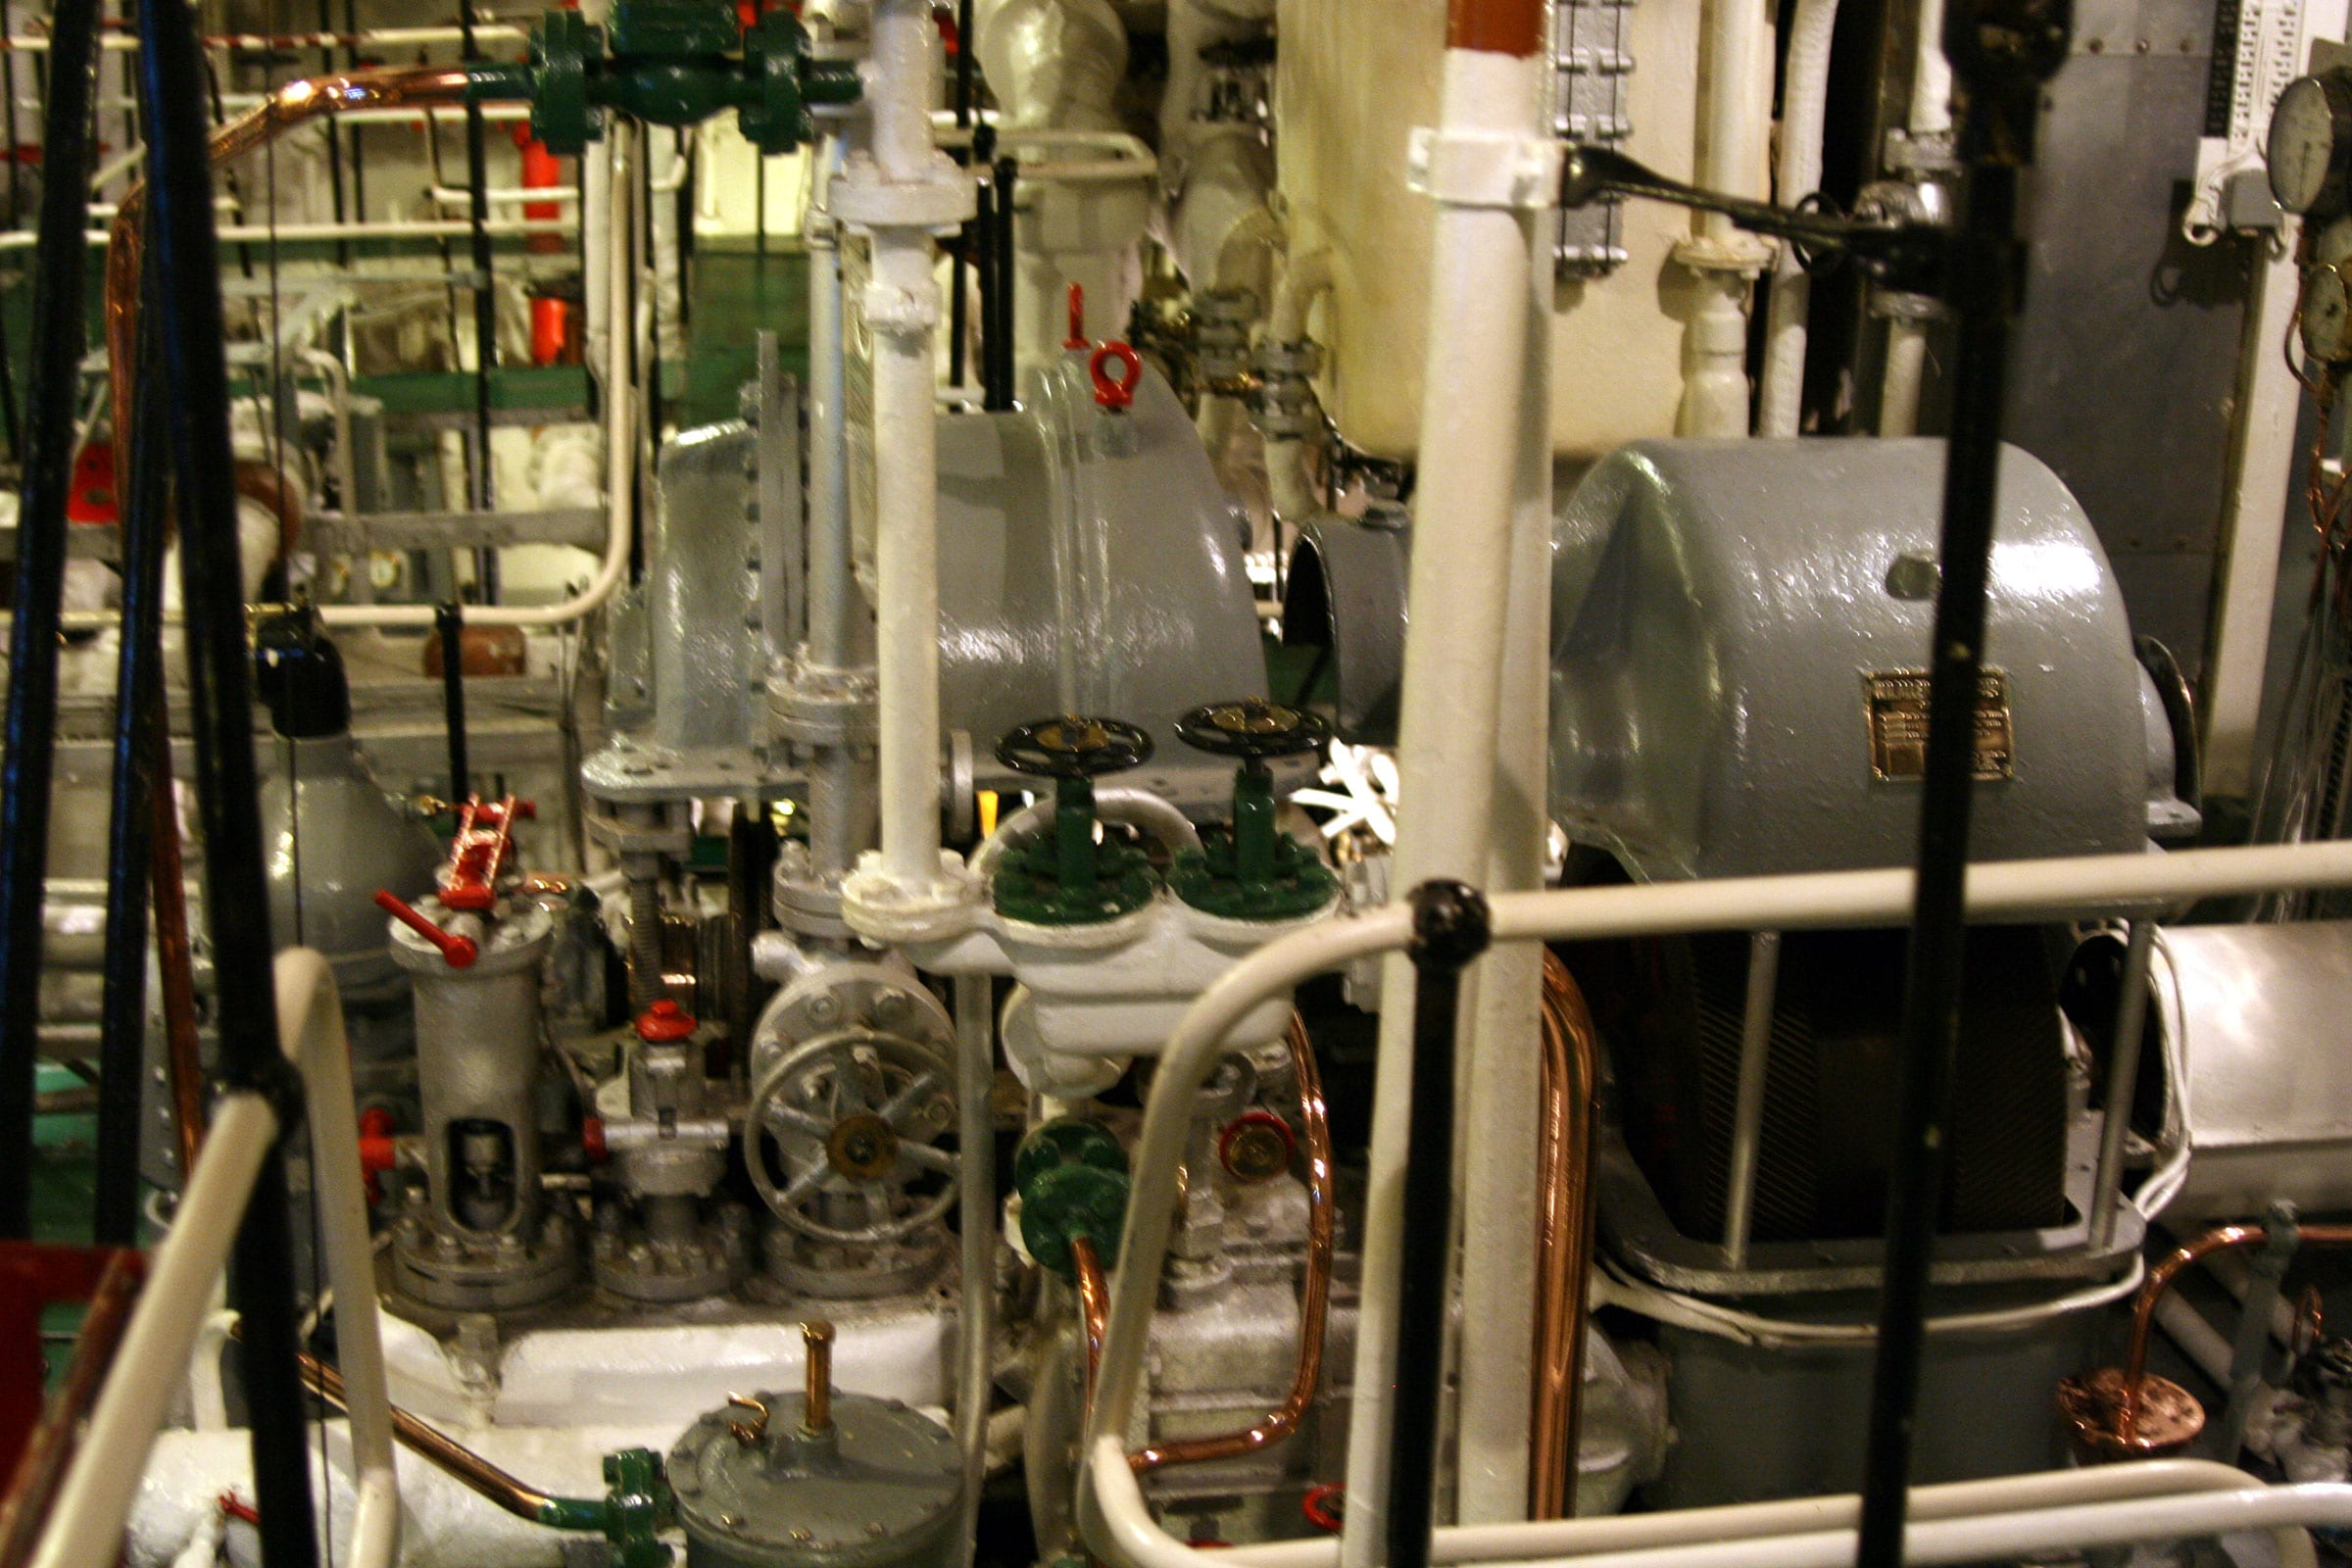 Protect Your Boiler Room From CO Issues